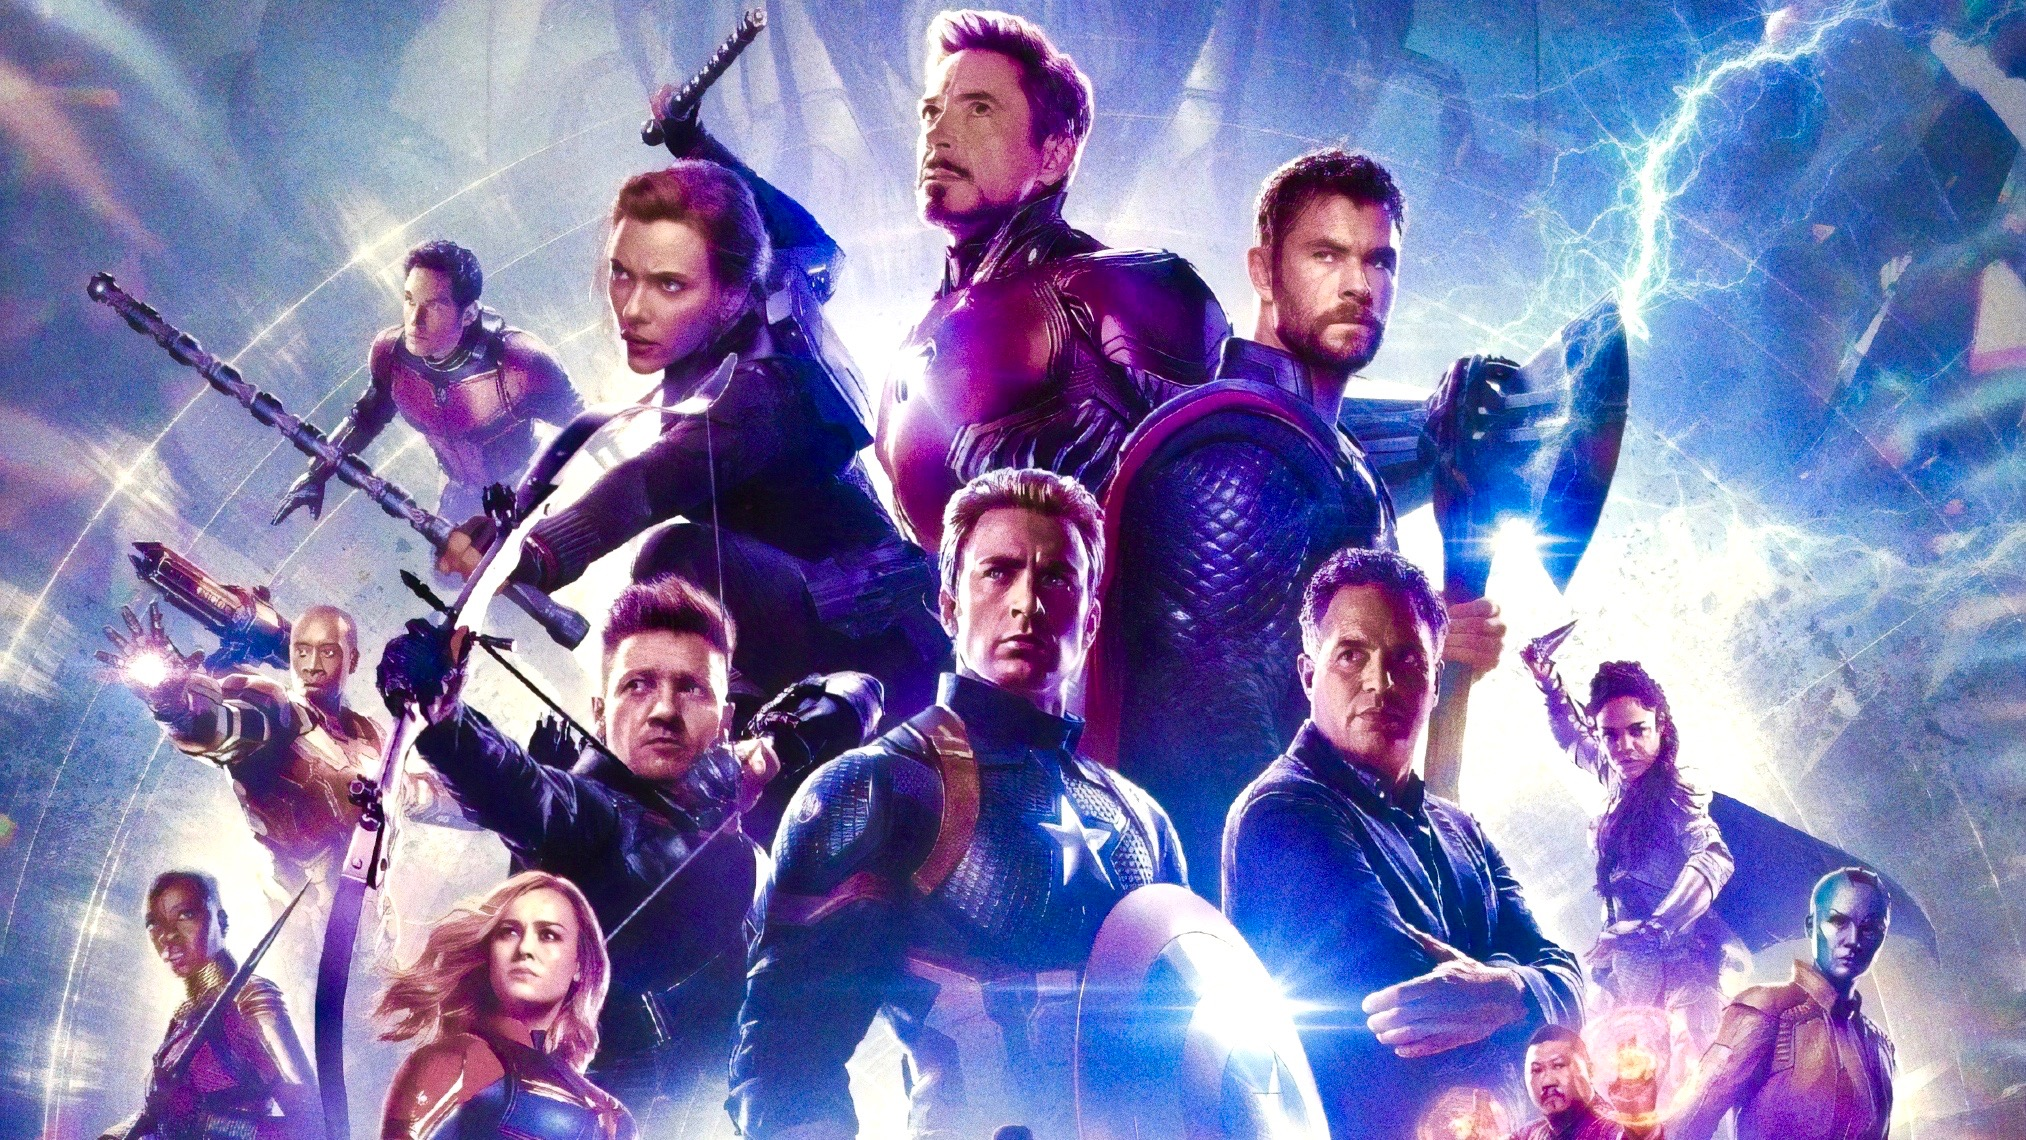 1920x1080 Avengers Endgame Chinese Poster Laptop Full Hd 1080p Hd 4k